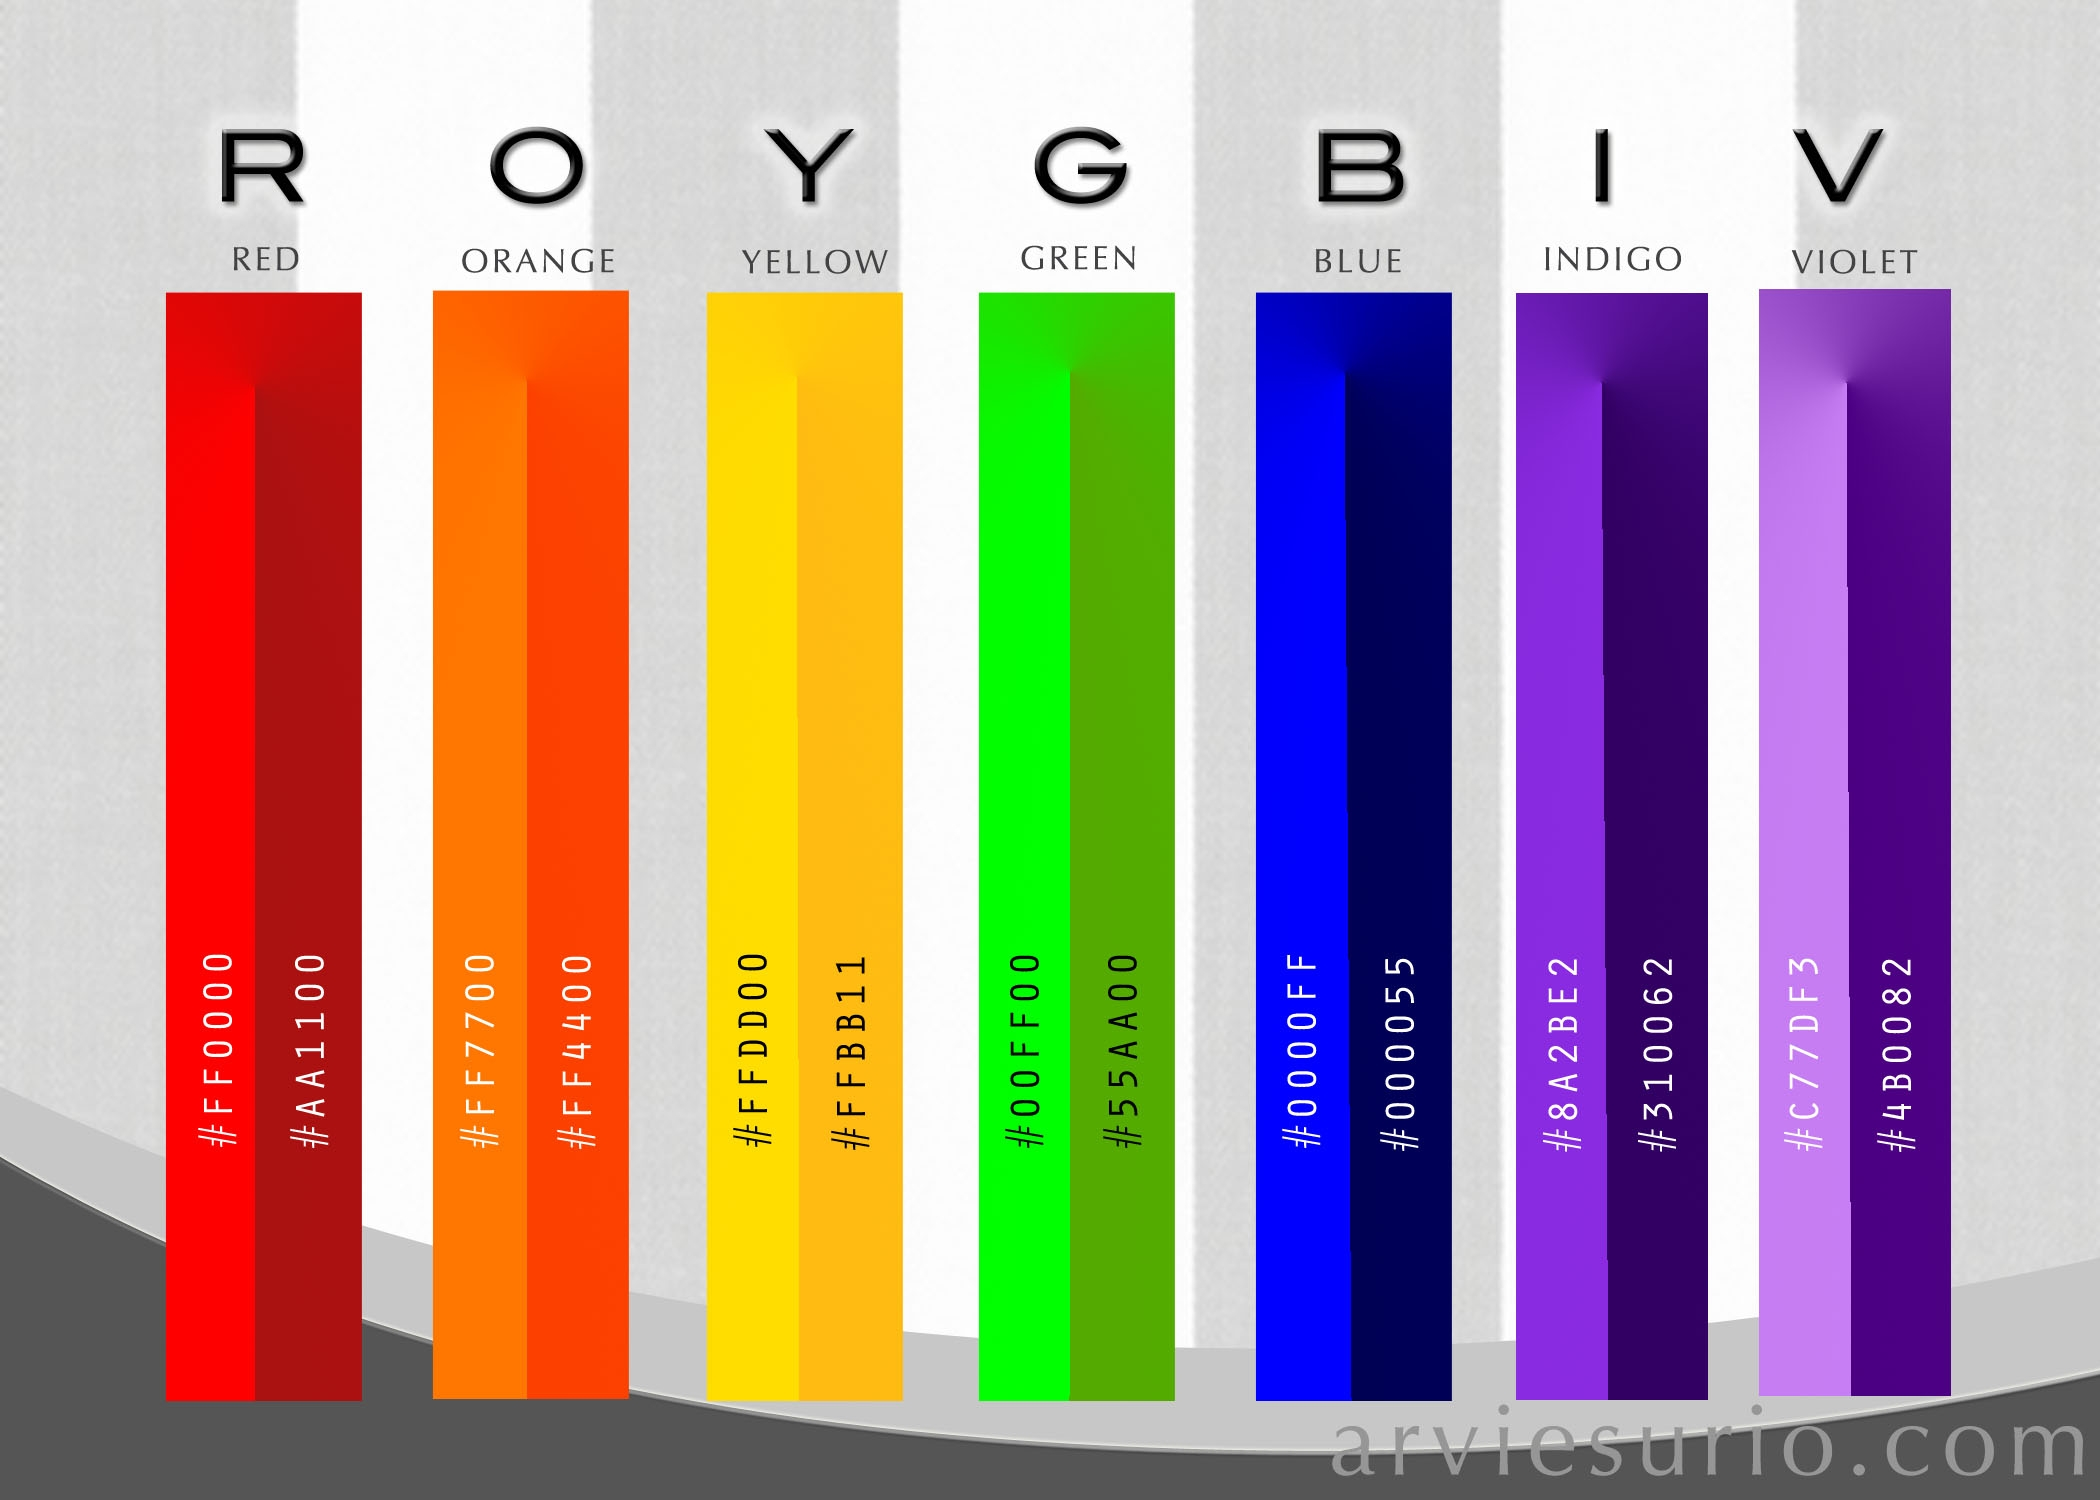 Huh...ROYGBIV is a thing...and I though Lambo was having a stroke...